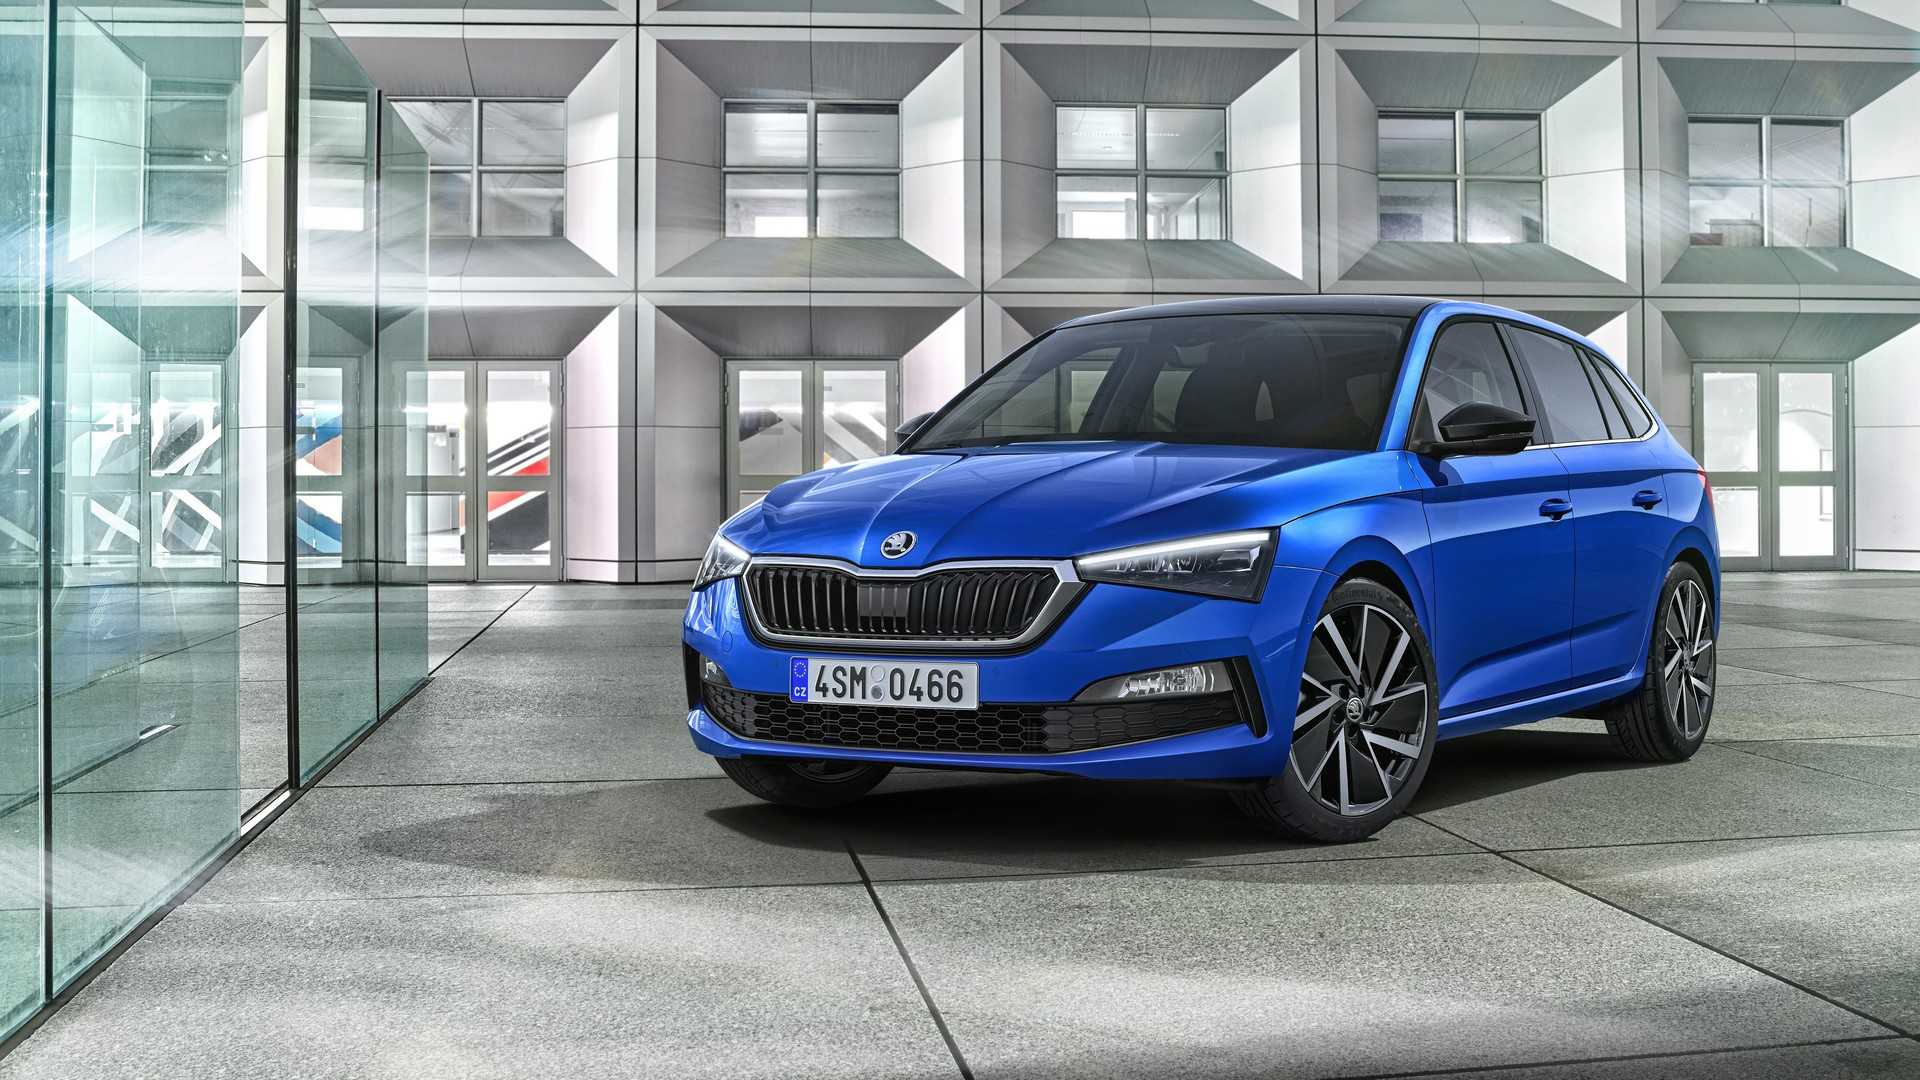 Skoda Scala hatch shown for the first time